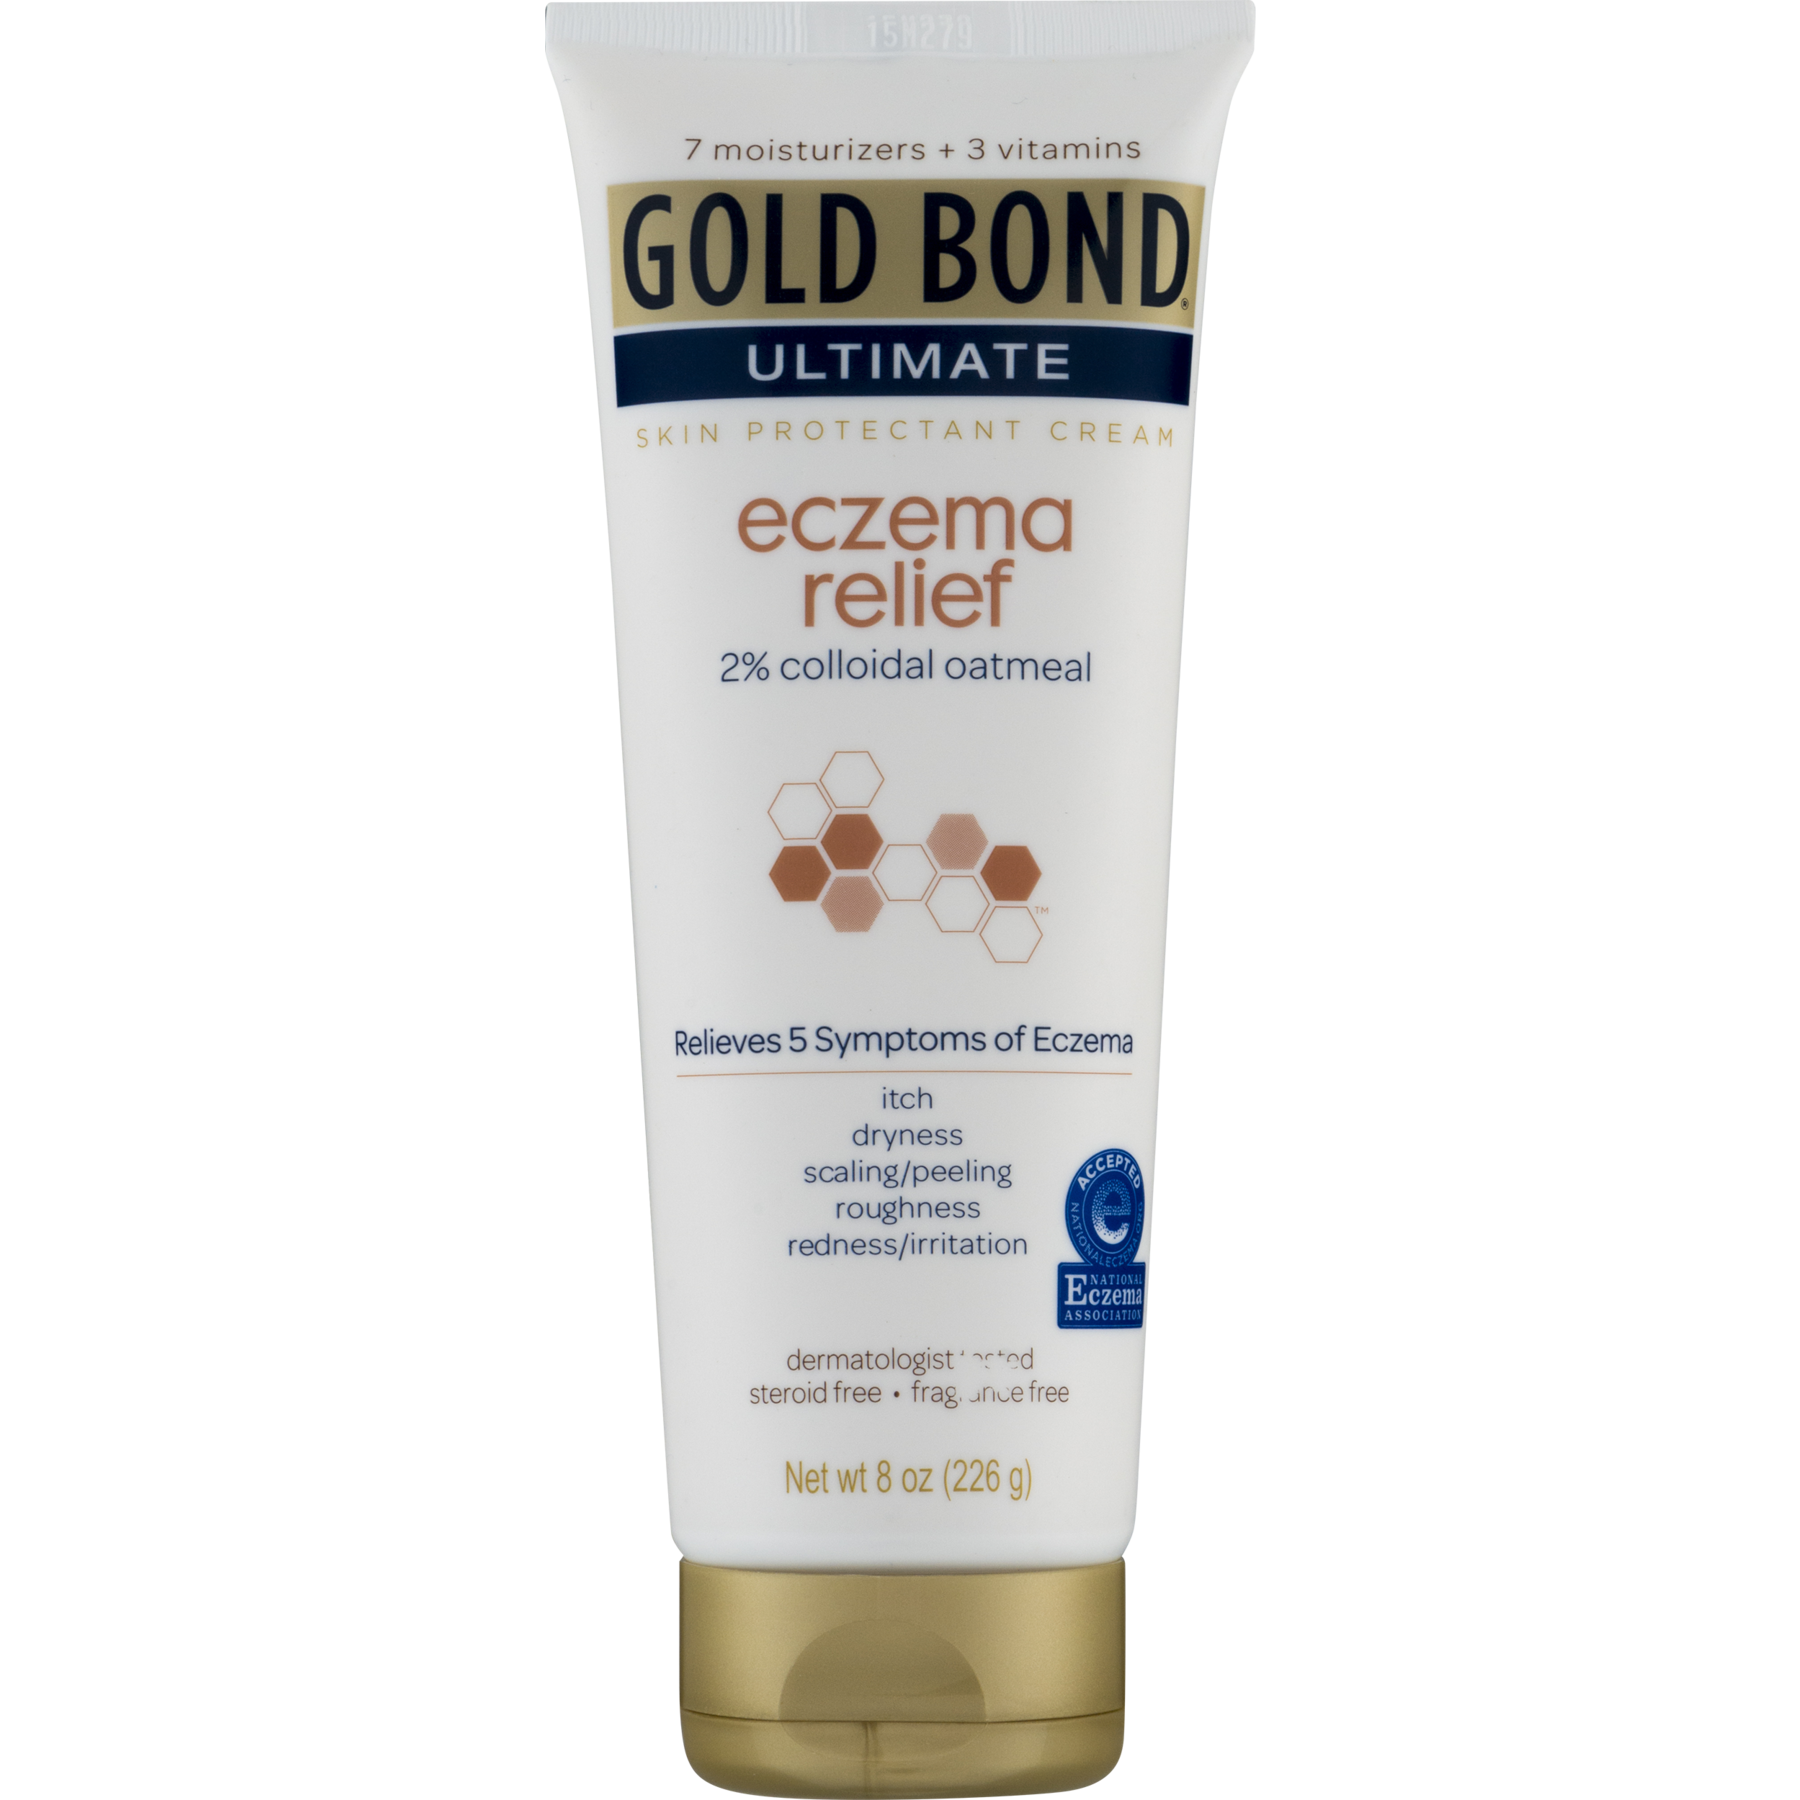 gold bond ultimate skin protectant cream eczema relief 8 0 oz